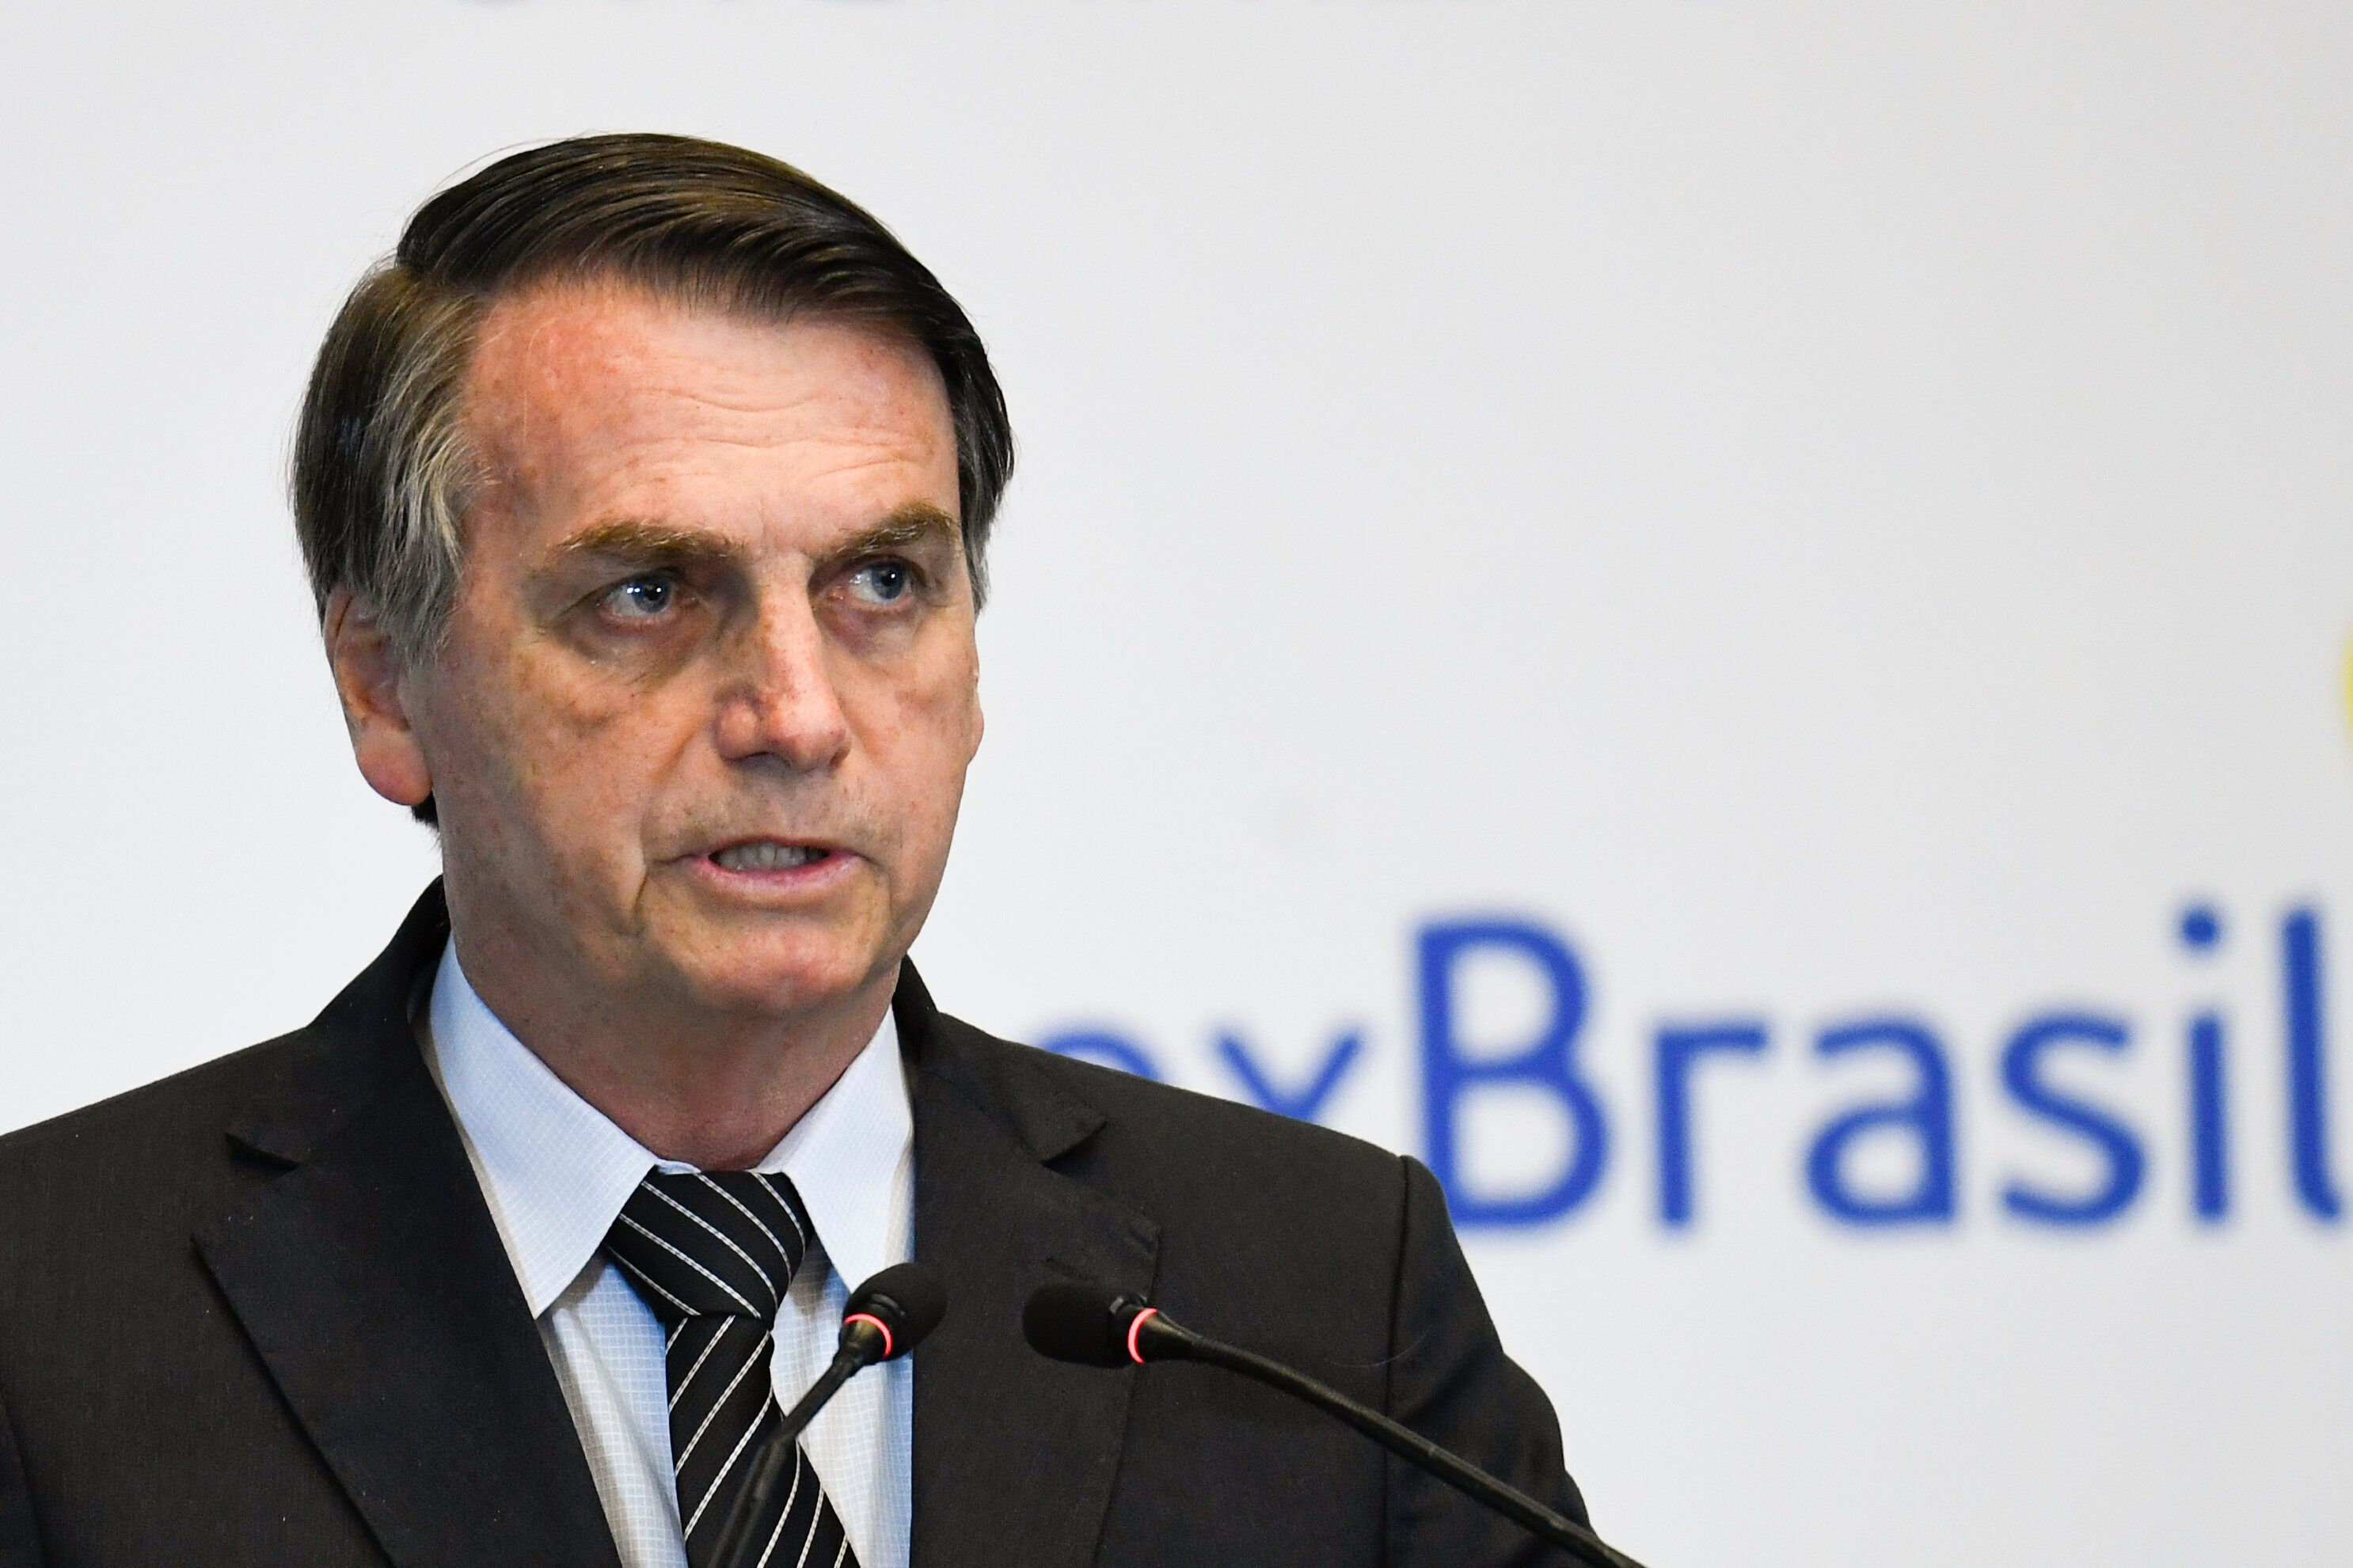 Brazil President Jair Bolsonaro has rolled back protections for indigenous reserves, and expressed skepticism that tribes are